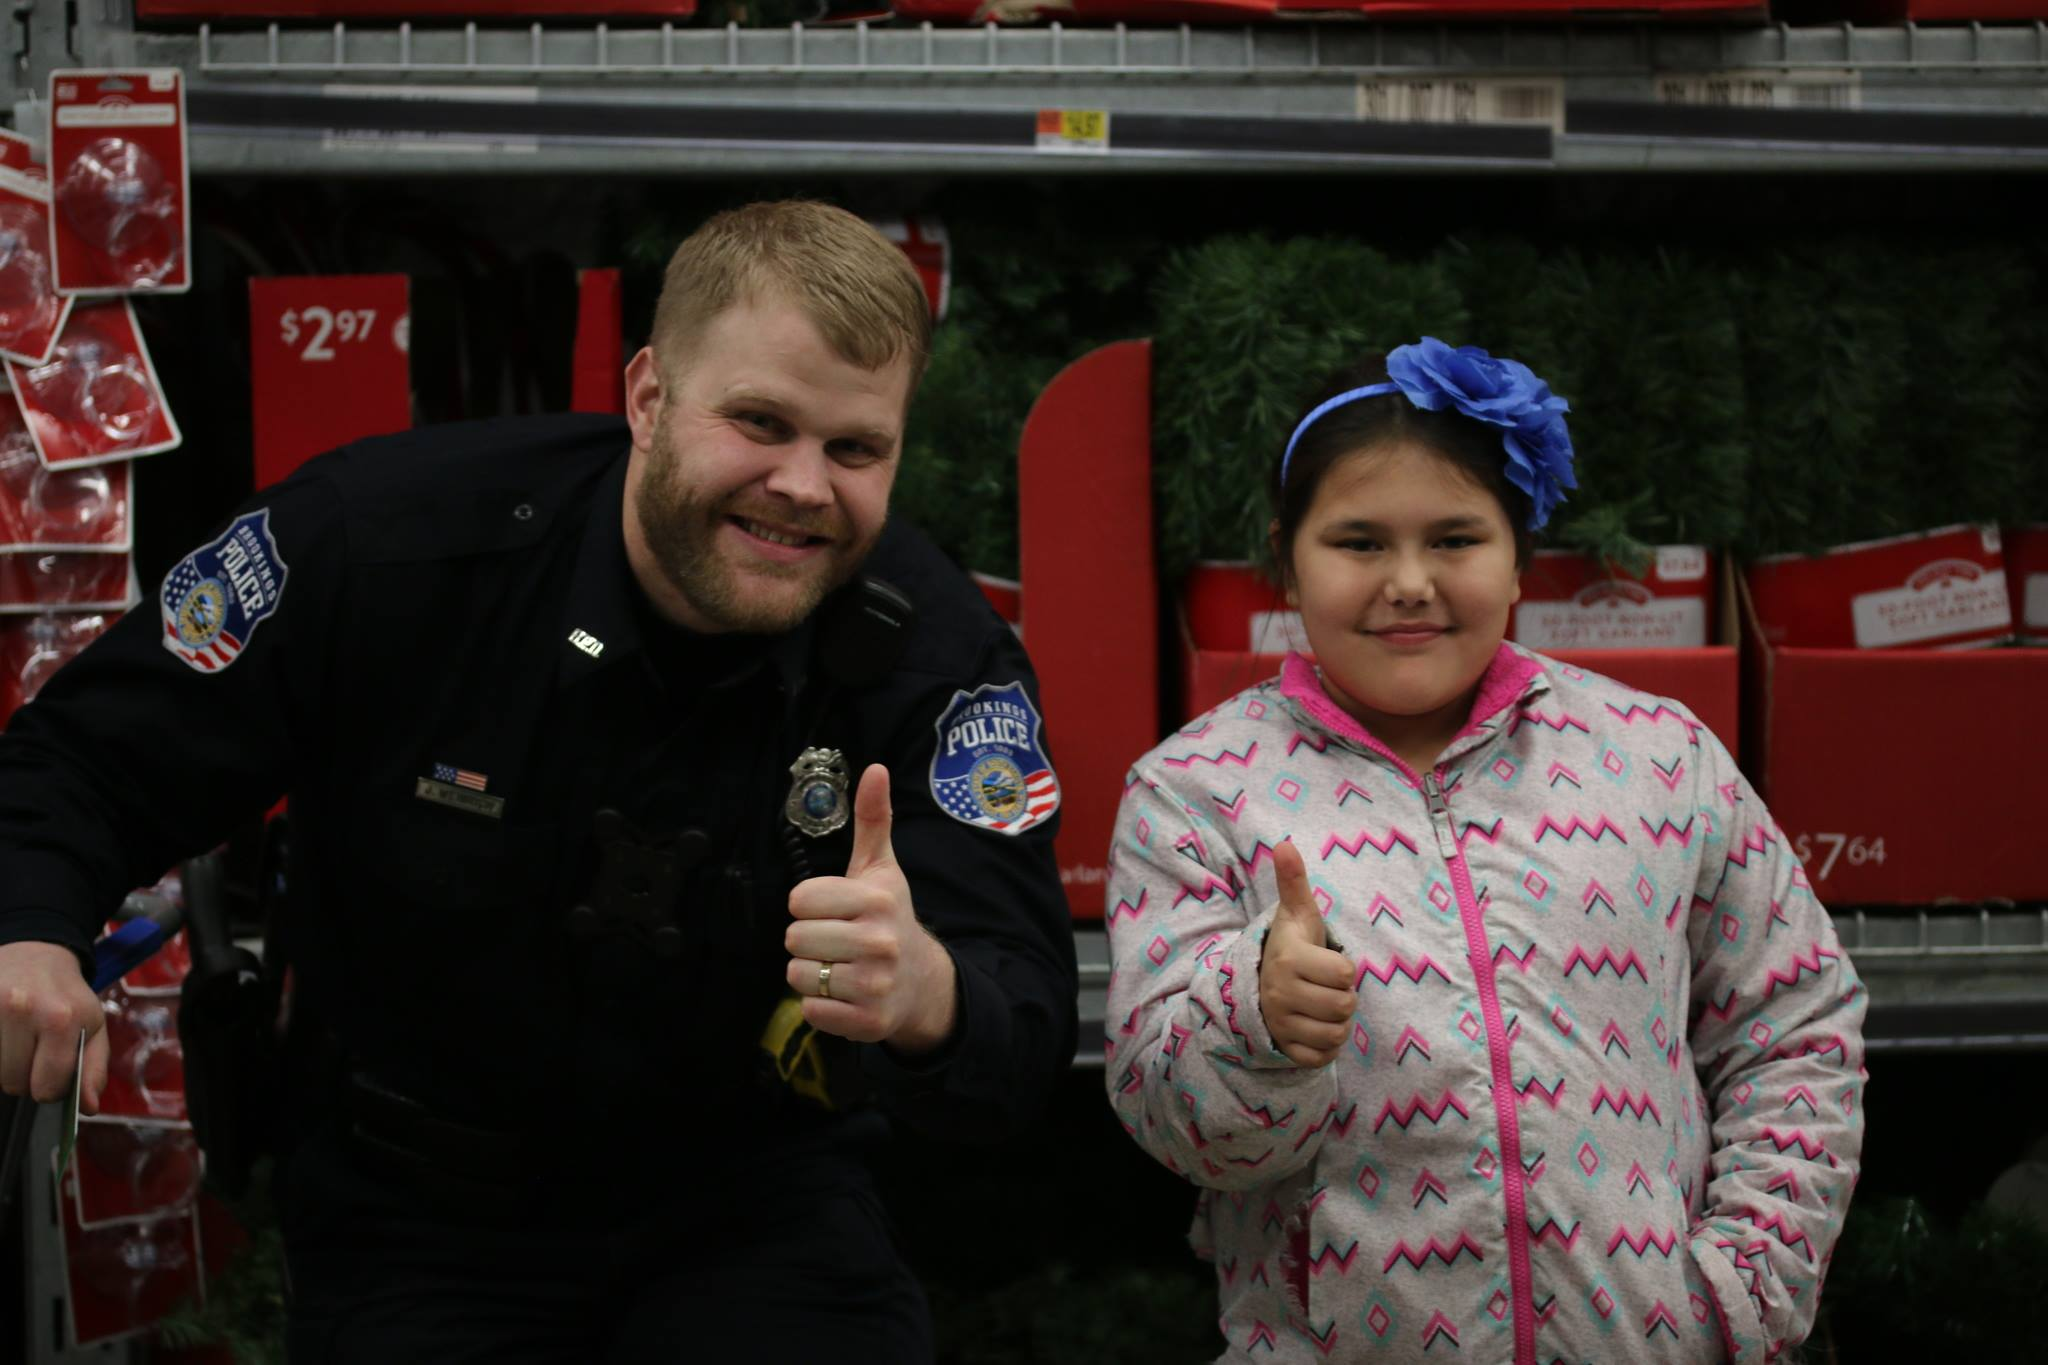 Officer and Kid at Christmas Kids and Cops